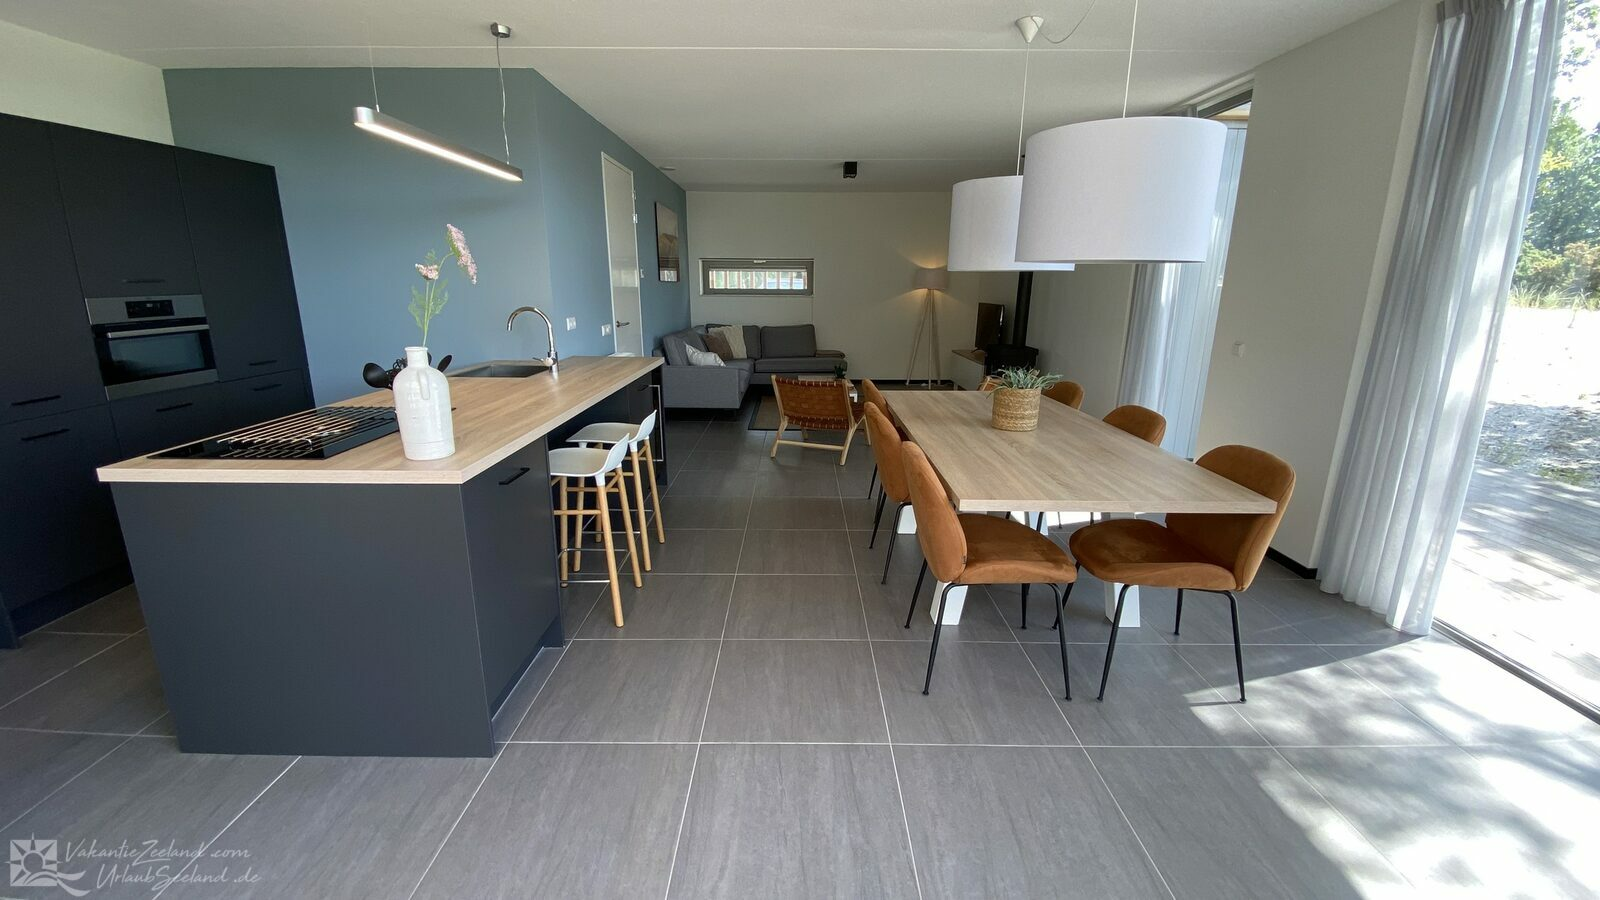 VZ843 Holiday home Luxe Ouddorp